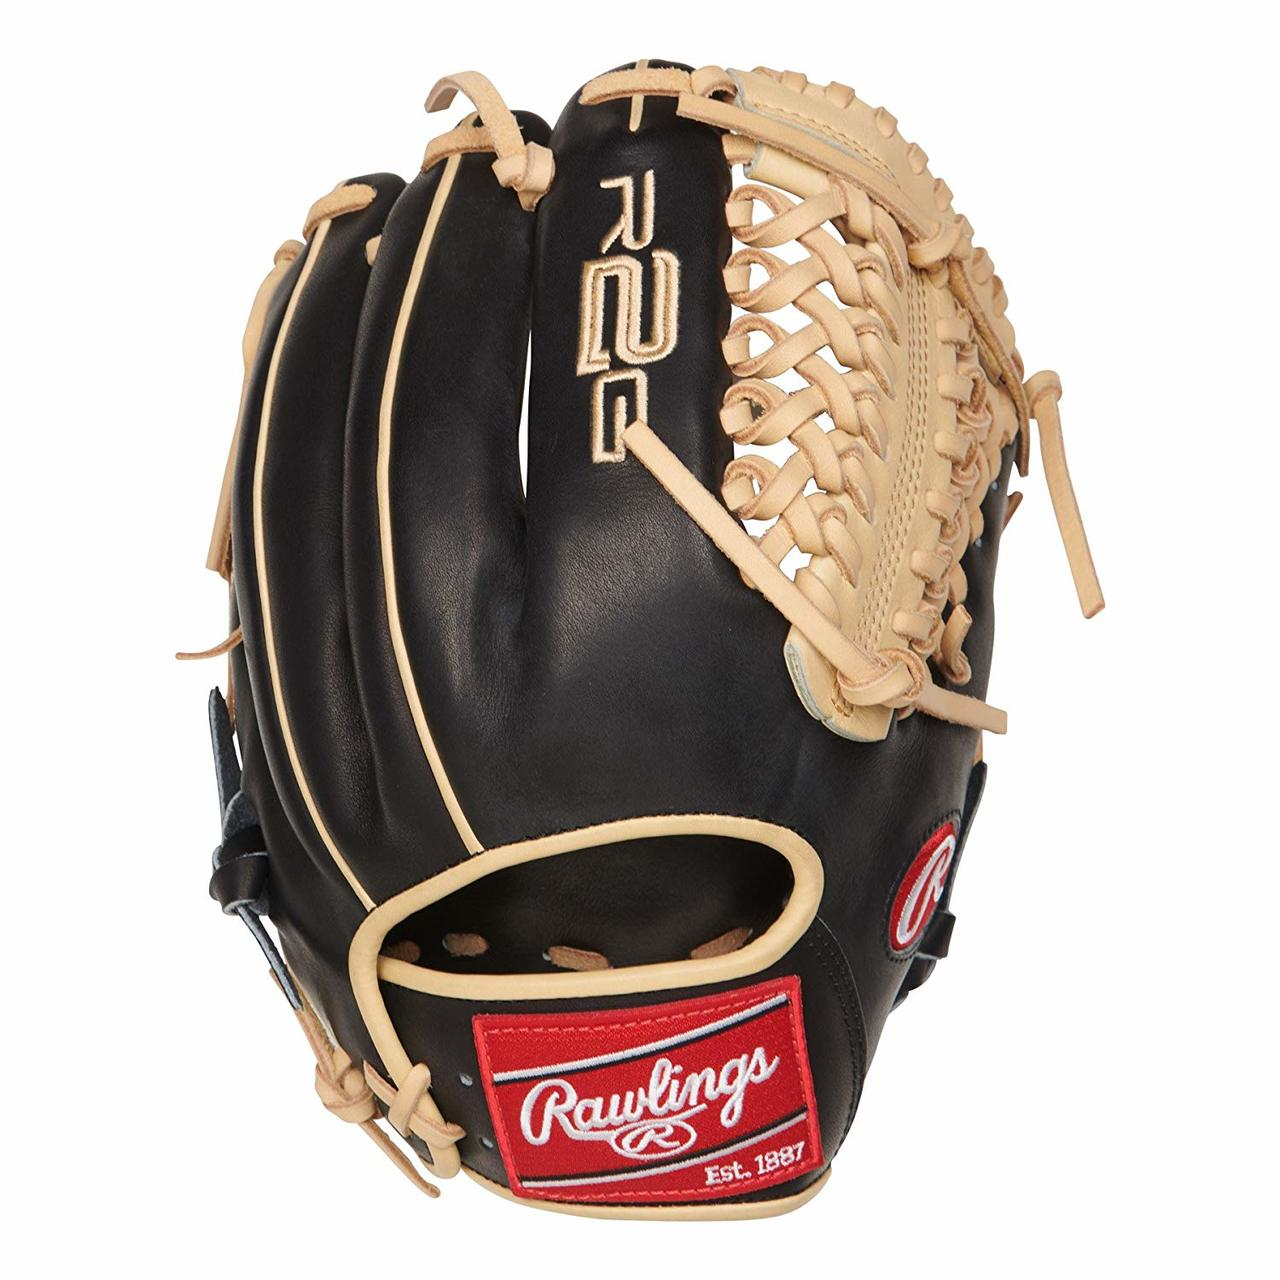 rawlings-heart-of-the-hide-r2g-11-75-inch-pror205-4bc-baseball-glove-right-hand-throw PROR205-4BC-RightHandThrow Rawlings 083321526602 11.75 Inch Model Modified Trap-Eze Web Narrow Fit Pattern Ideal For